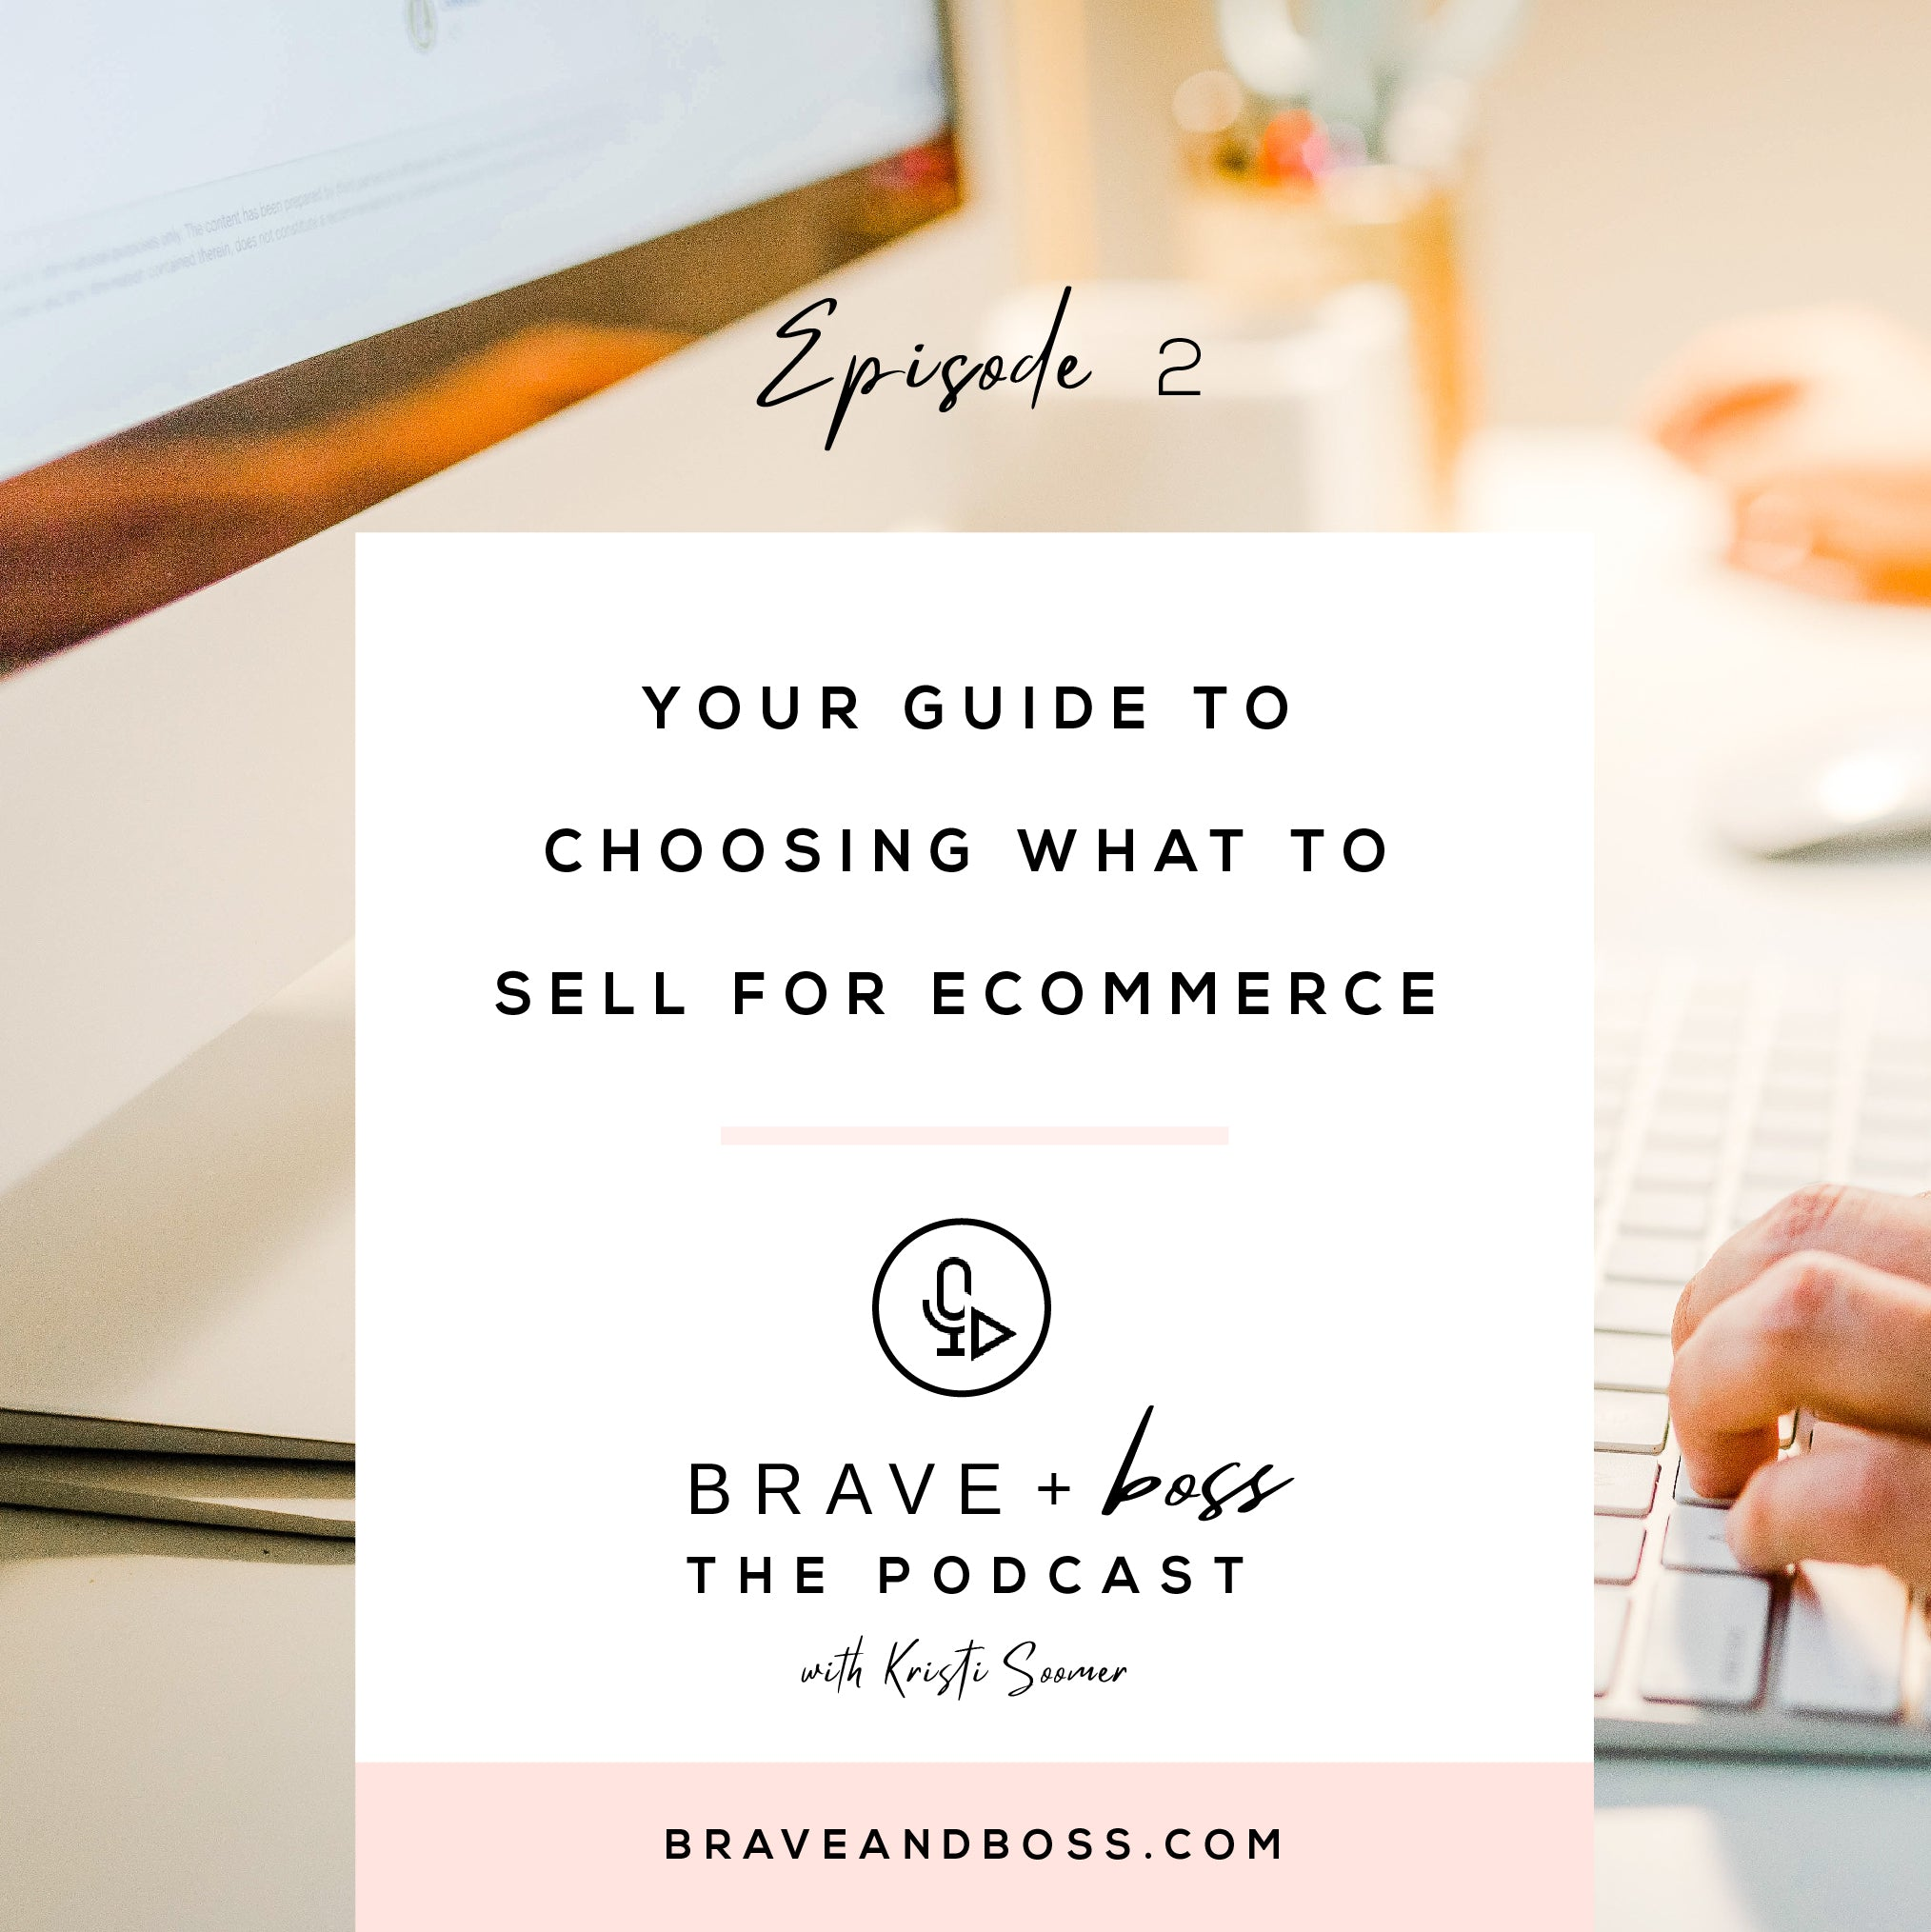 Your Guide to Choosing what to Sell for Ecommerce